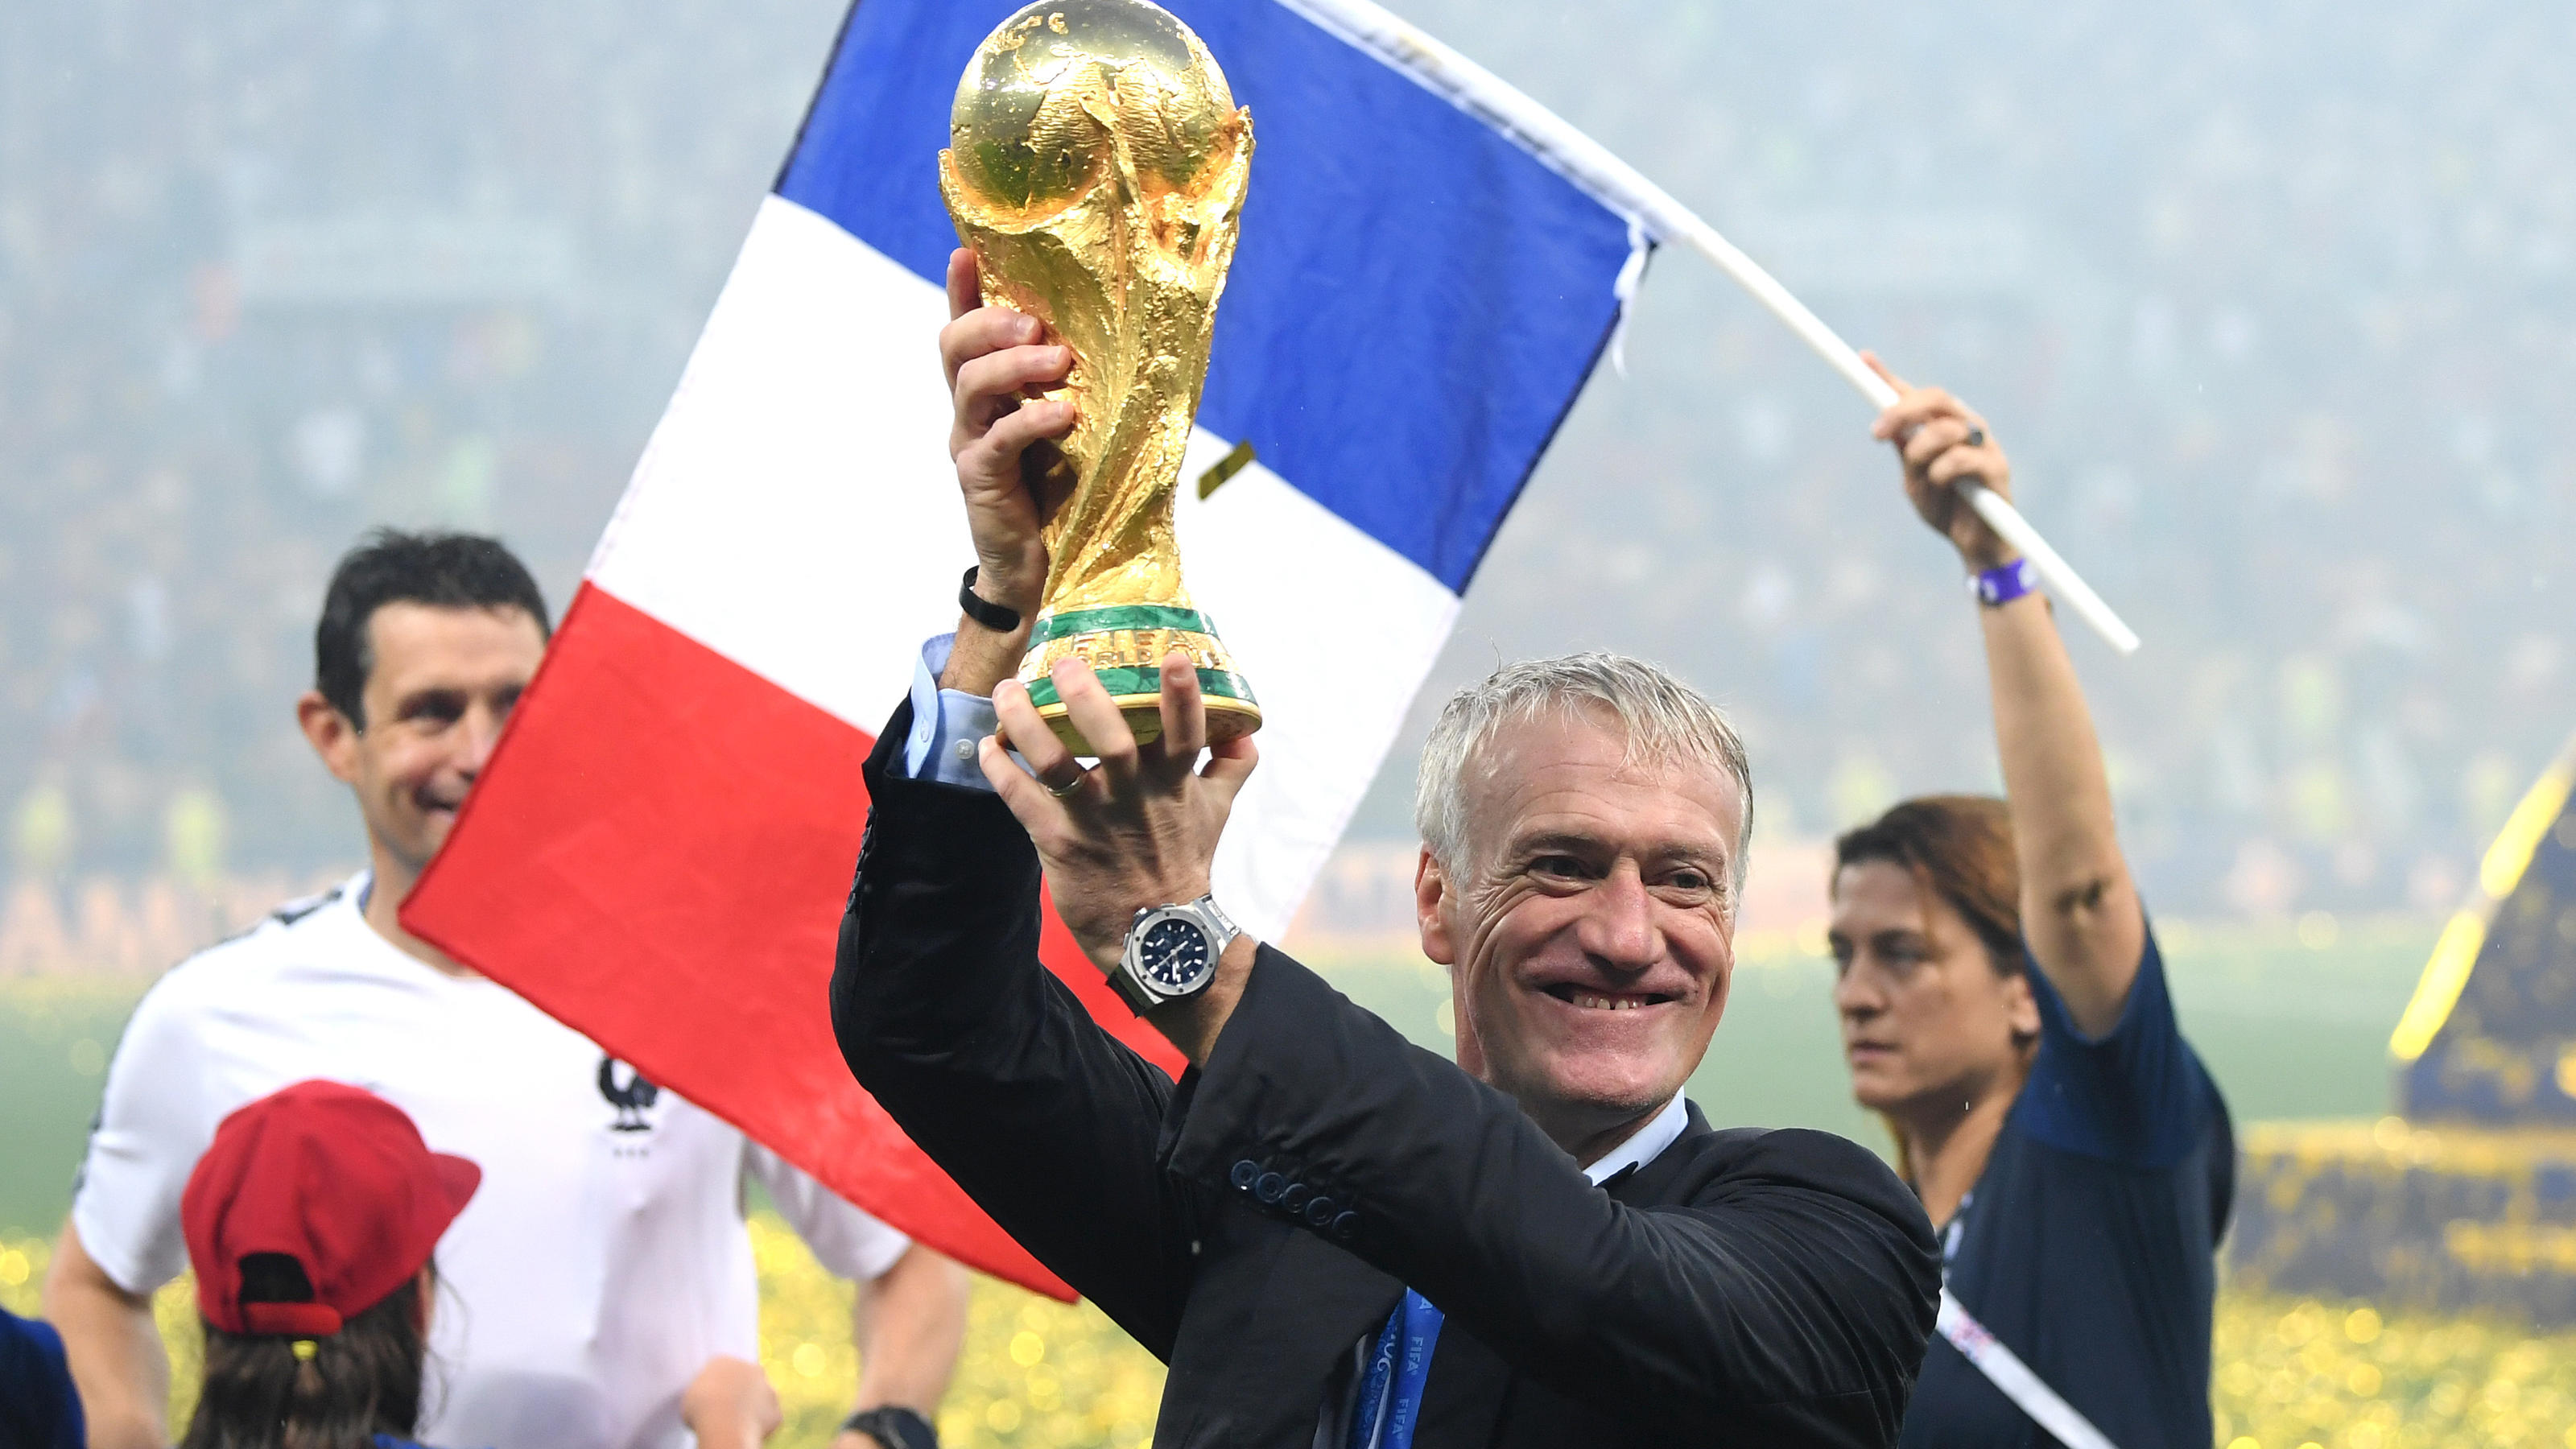 MOSCOW, RUSSIA - JULY 15:  Didier Deschamps, Manager of France celebrates with the World Cup trophy following the 2018 FIFA World Cup Final between France and Croatia at Luzhniki Stadium on July 15, 2018 in Moscow, Russia.  (Photo by Matthias Hangst/